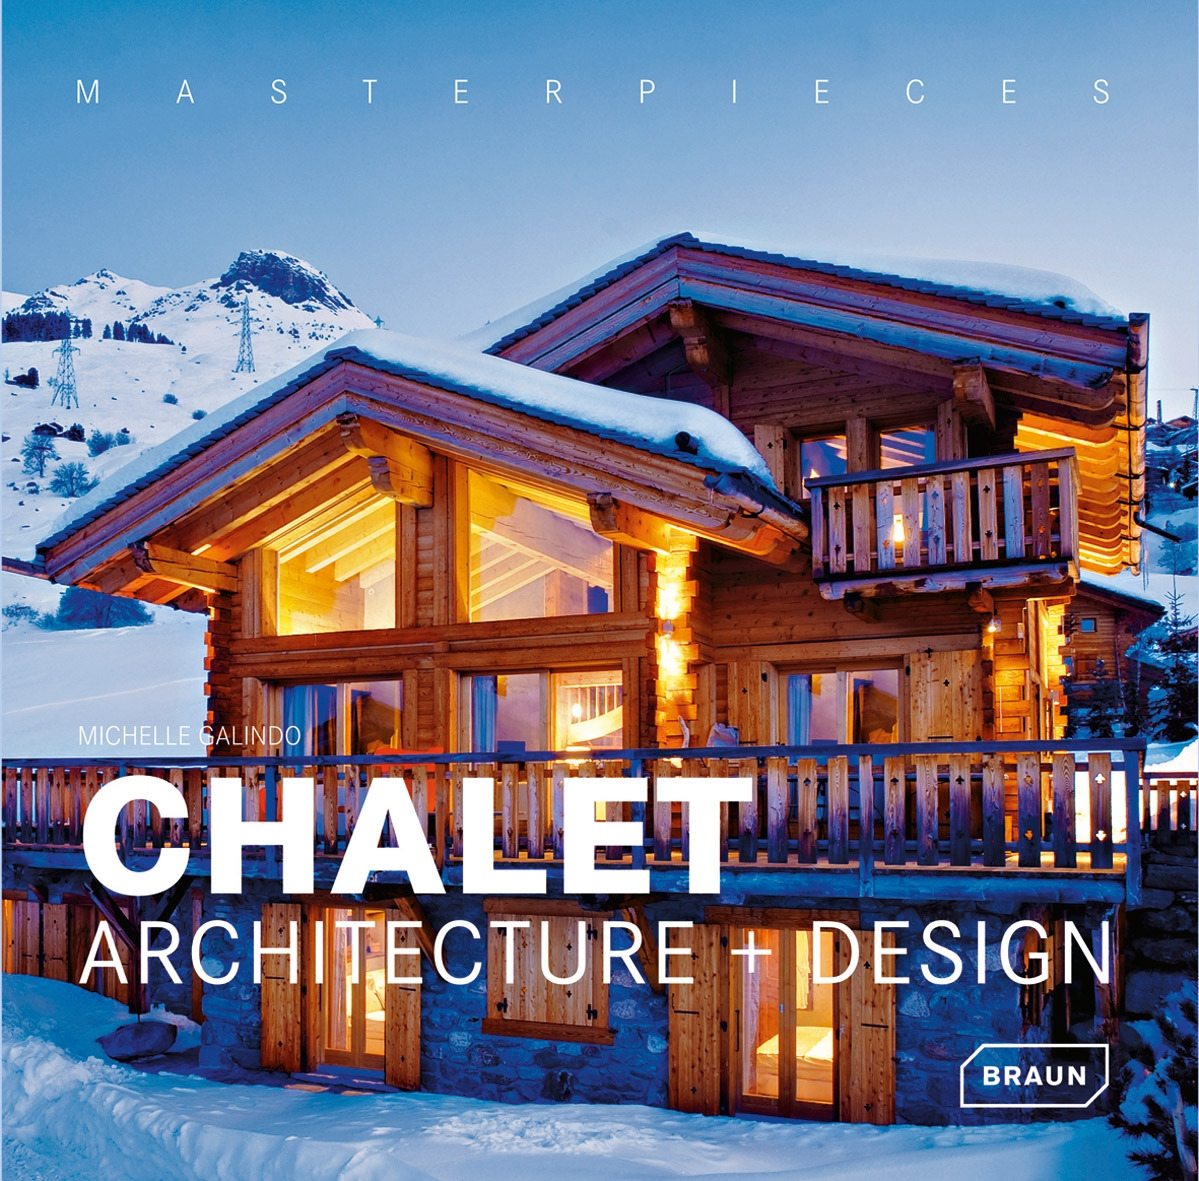 masterpieces chalet architecture design architecture braun publishing. Black Bedroom Furniture Sets. Home Design Ideas